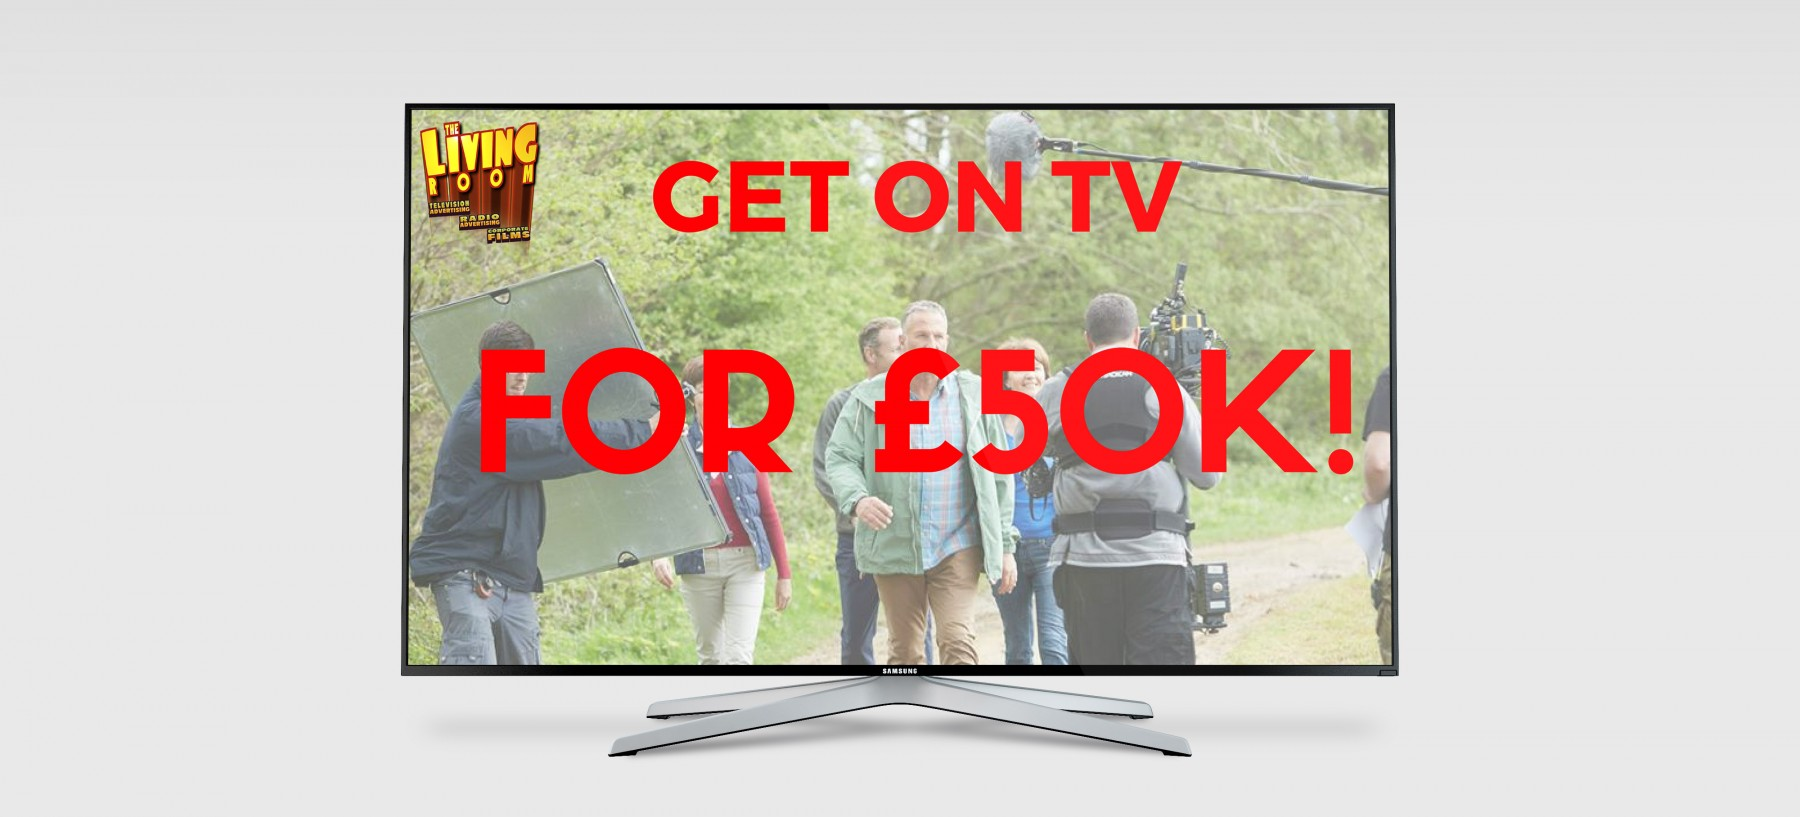 Get your brand on tv for £50k